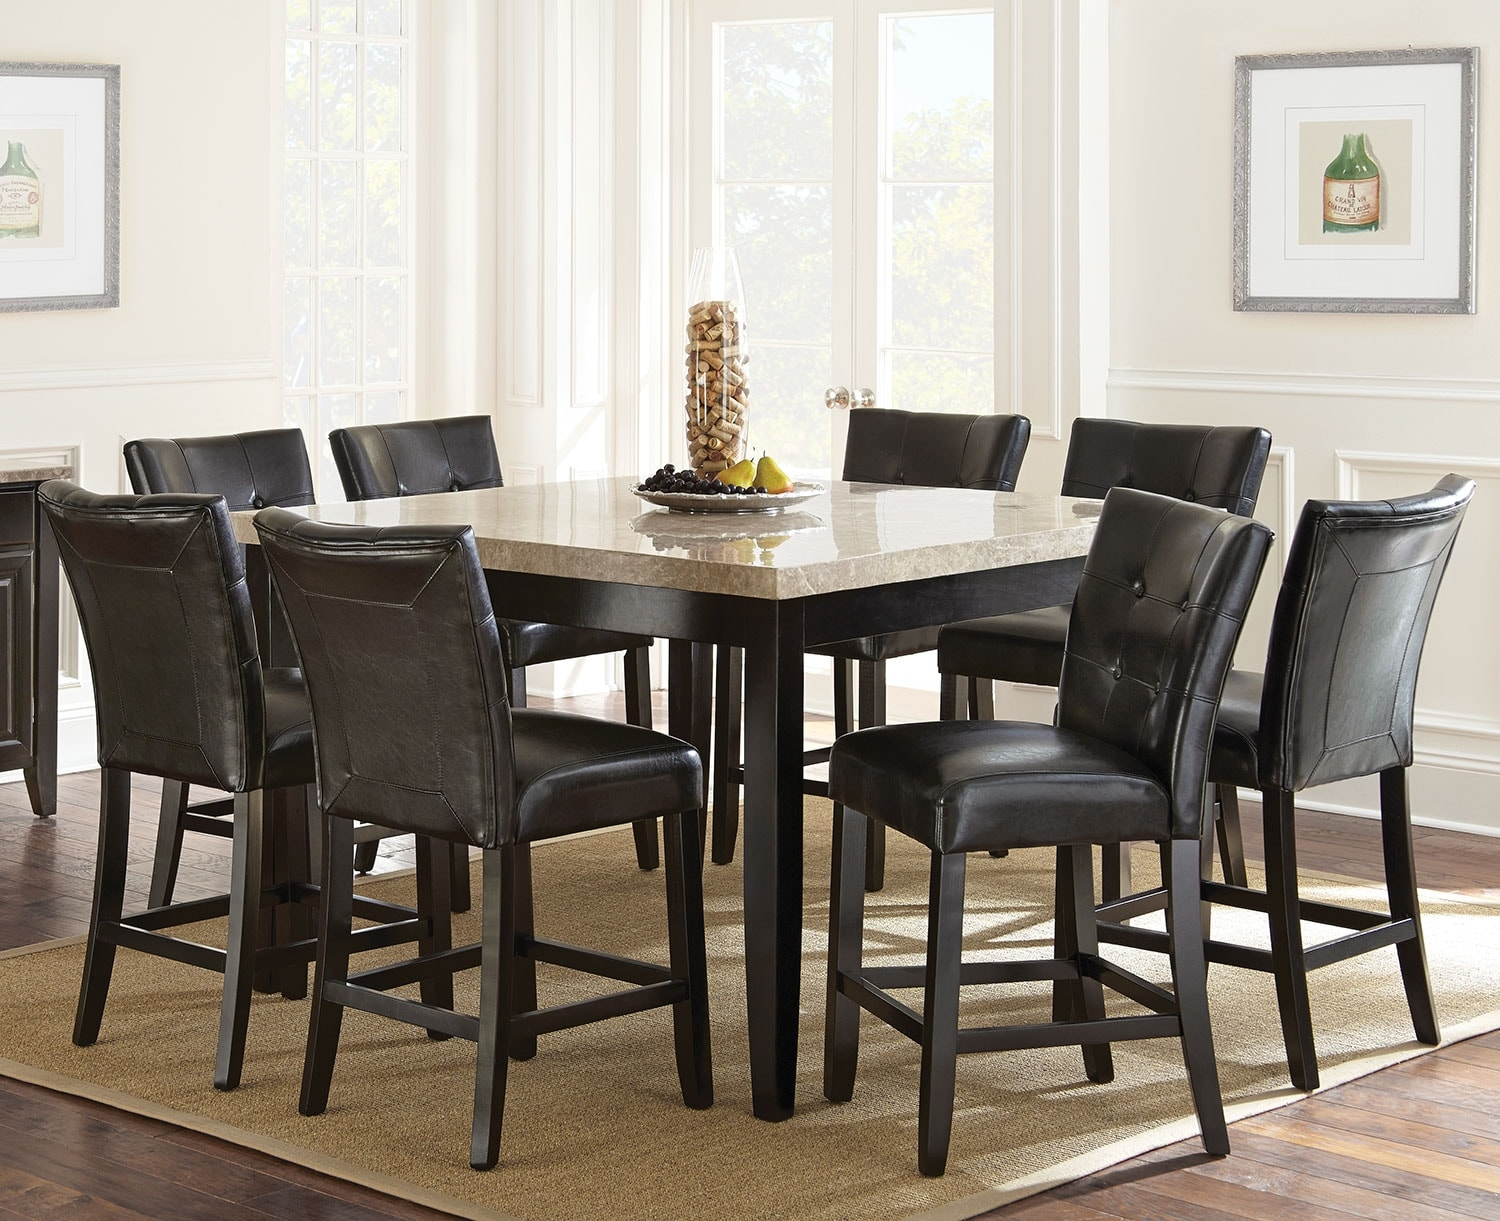 Dining Room Furniture - Montibello 9-Piece Pub-Height Dining Package with White Marble Tabletop